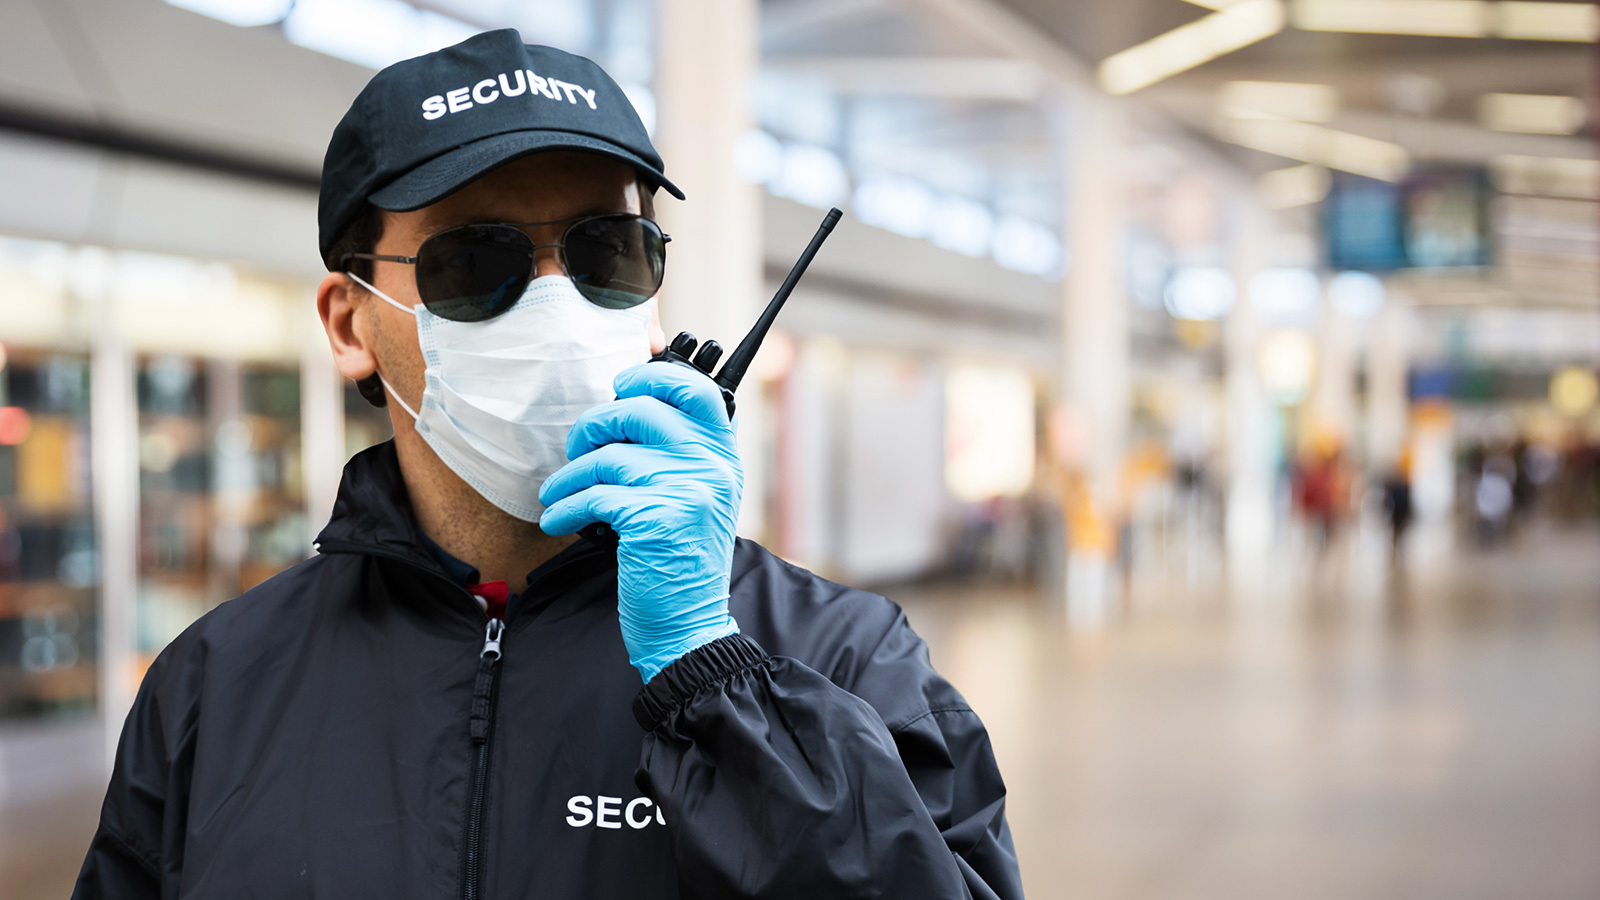 How Has Coronavirus Changed the Security Industry?